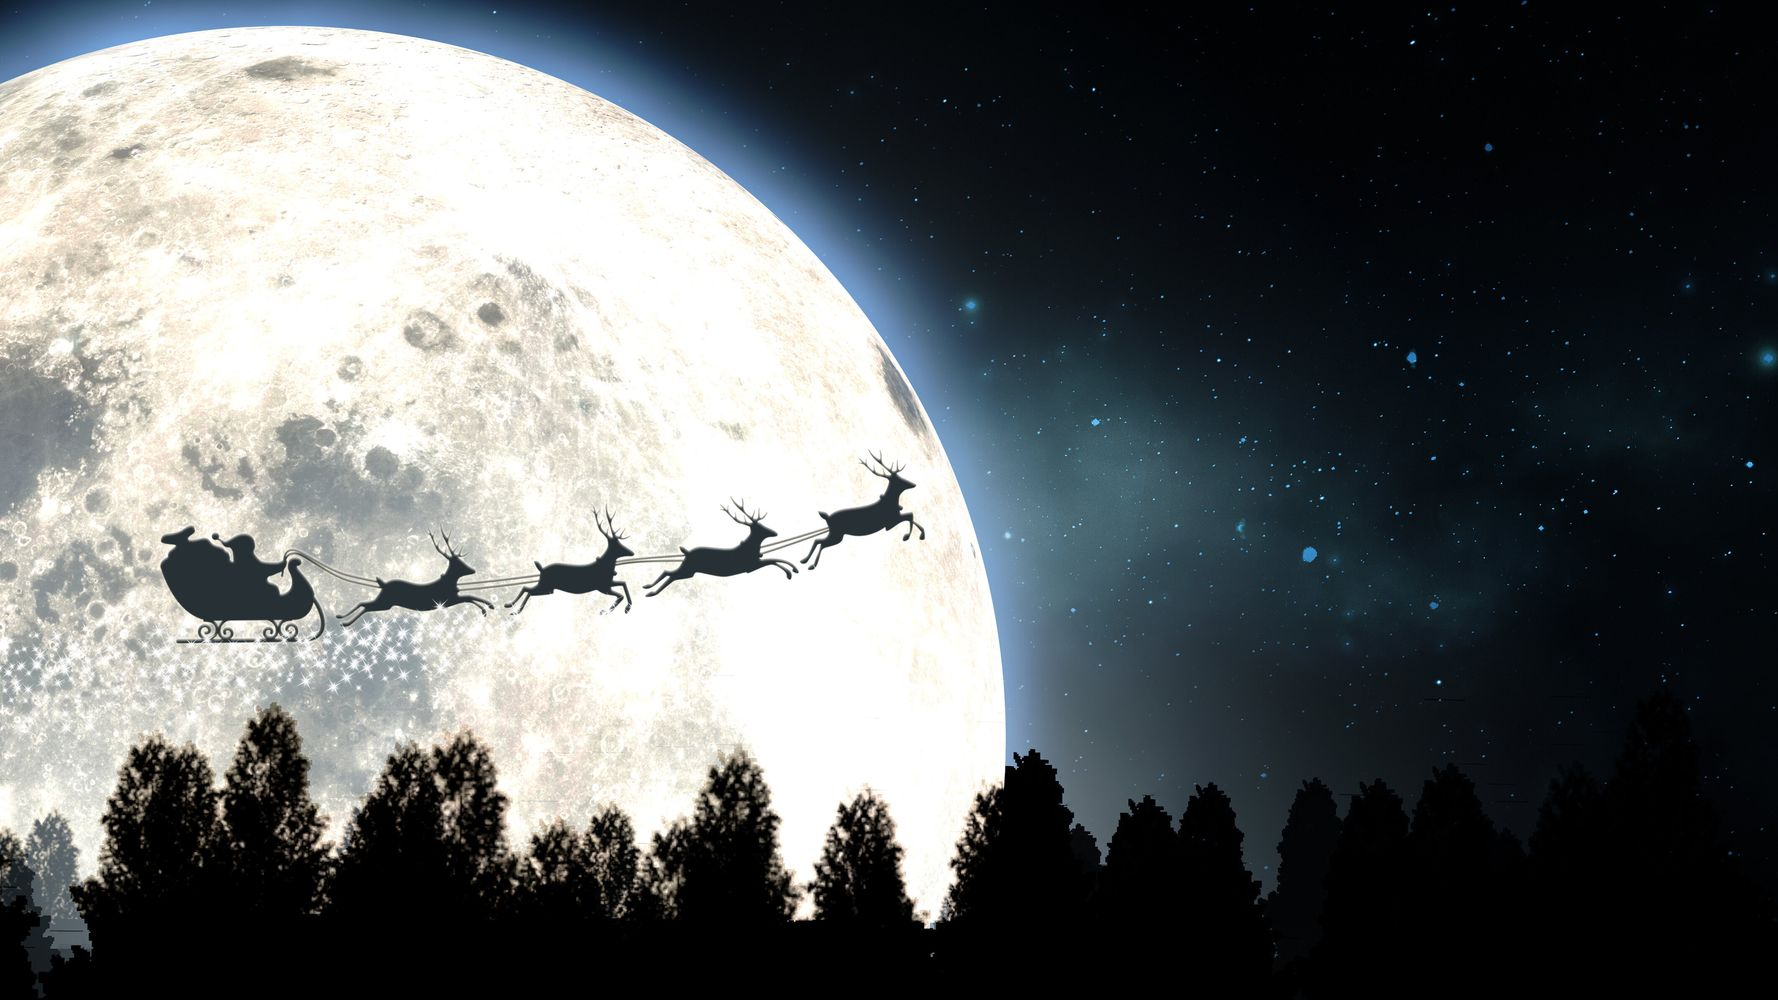 Coronavirus Pandemic Won't Stop NORAD From Tracking Santa This Year